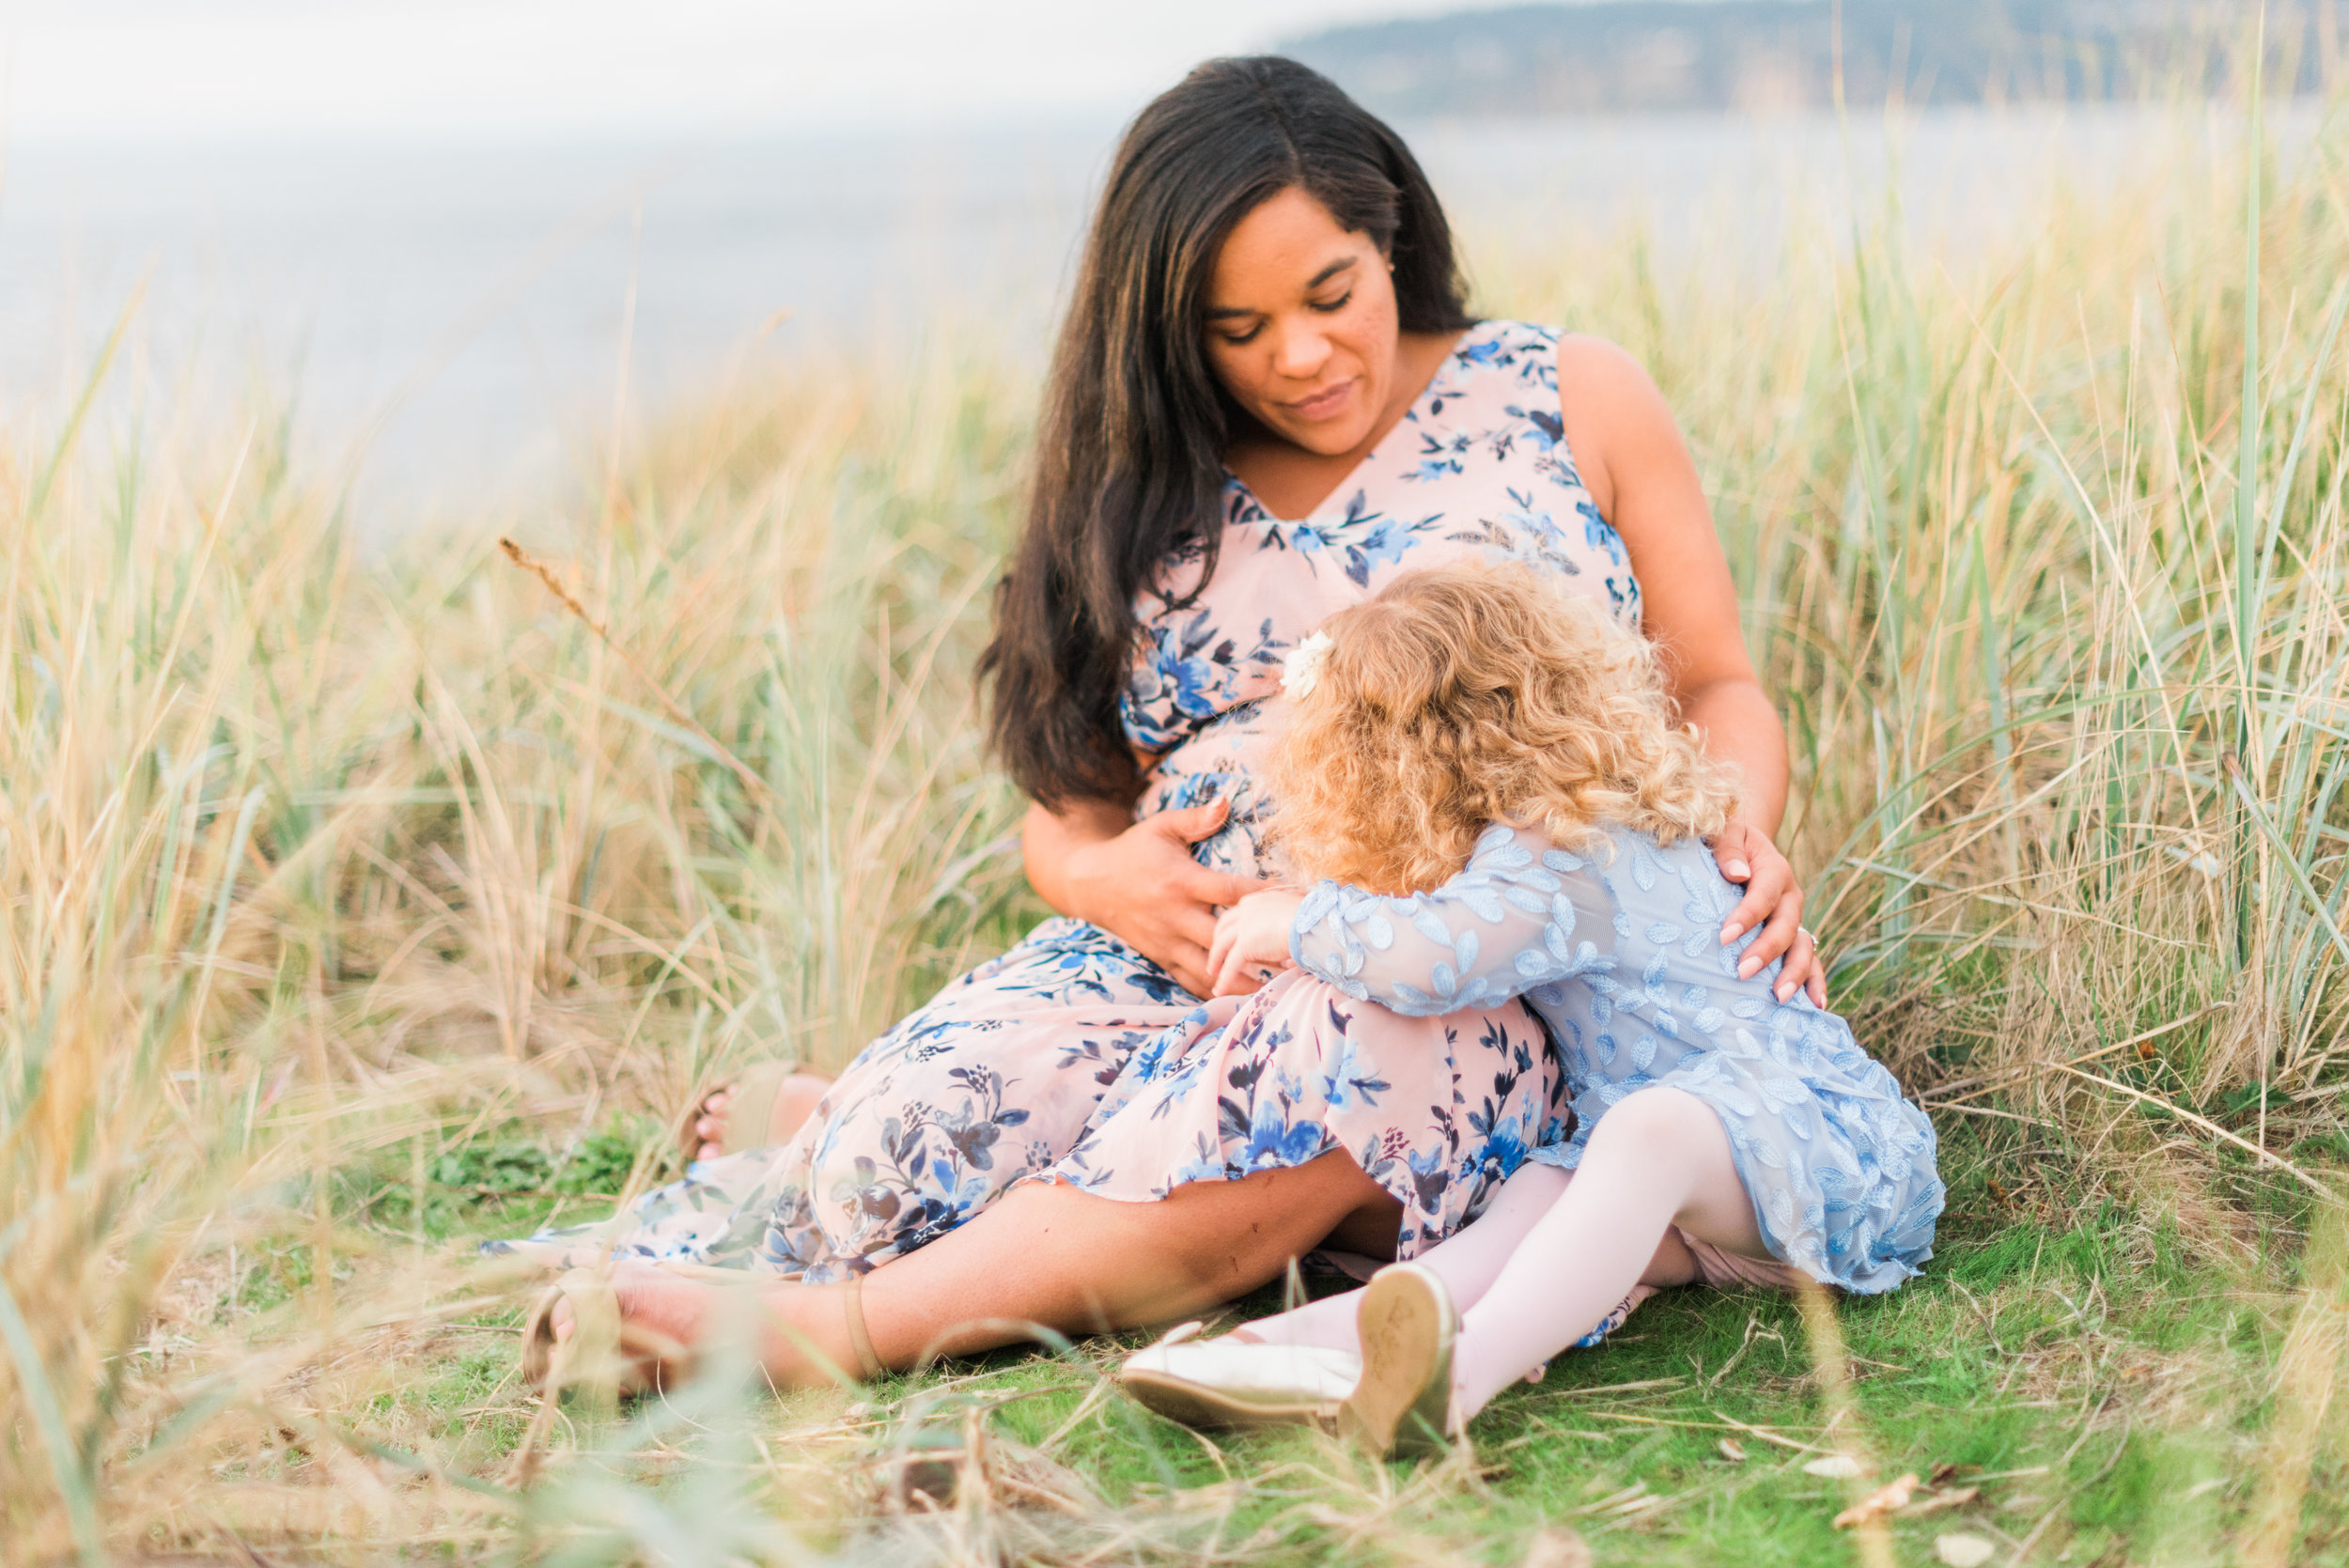 Brooke Summers Photography | #GrassiWoodYouHaveMyBabyPart2